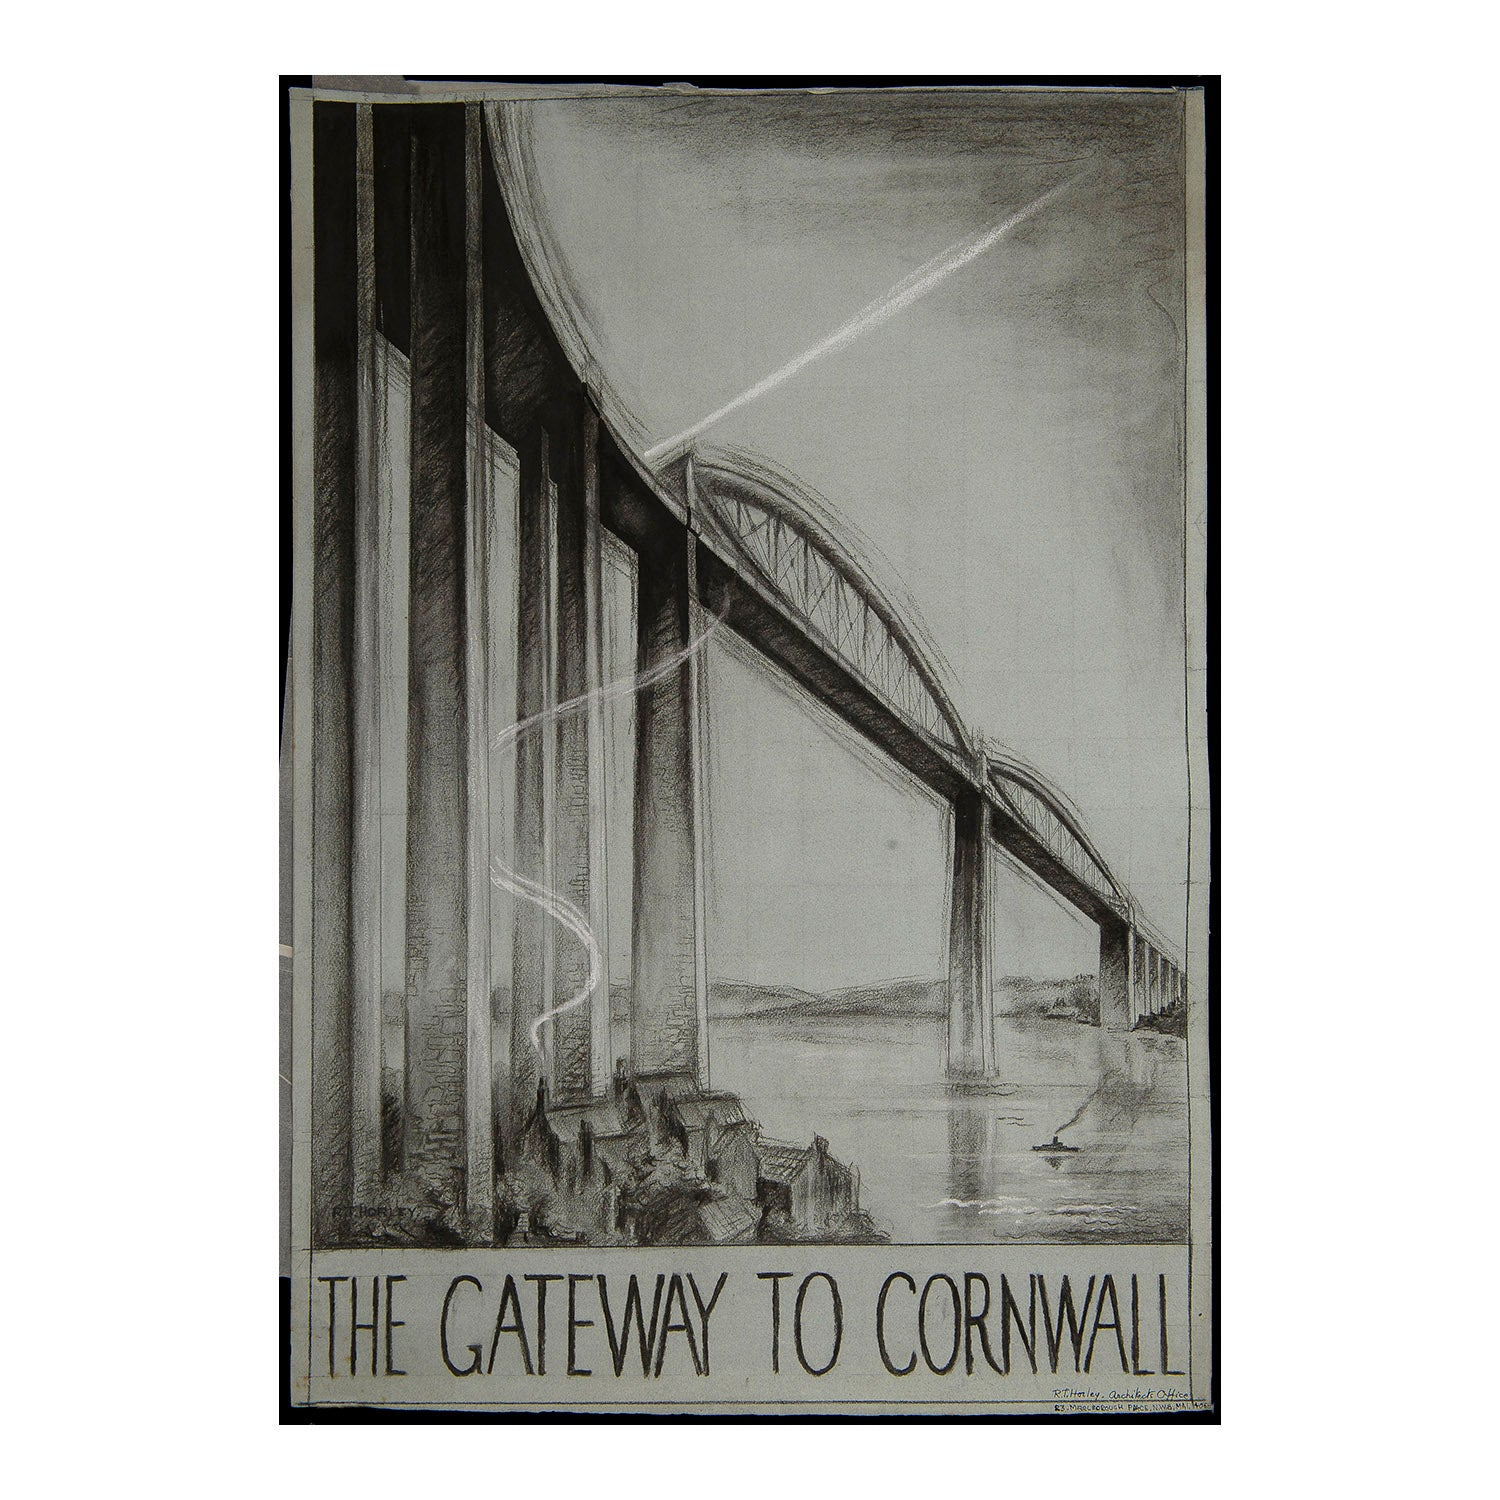 Original proposed railway poster artwork The Gateway to Cornwall